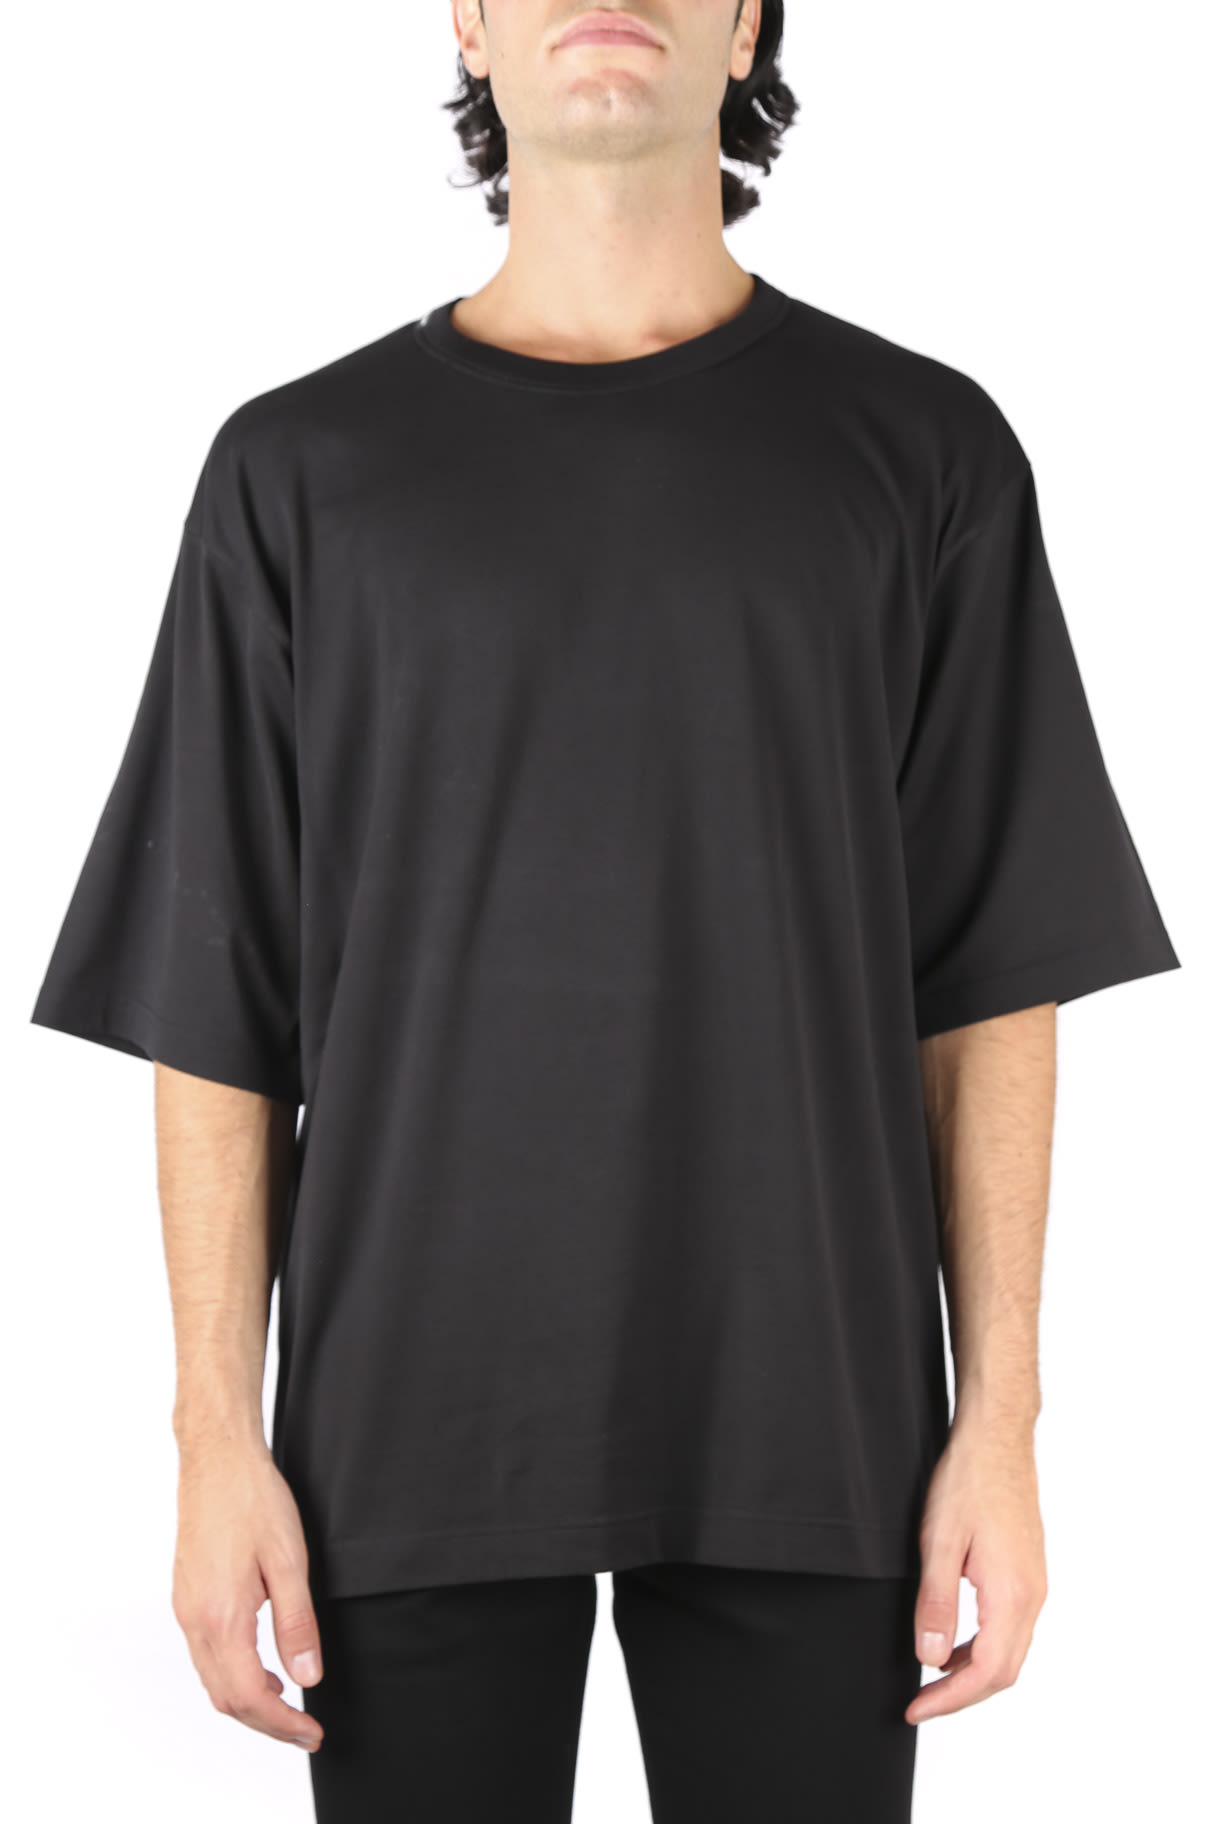 Dolce & Gabbana Black Cotton T-shirt With Back Logo